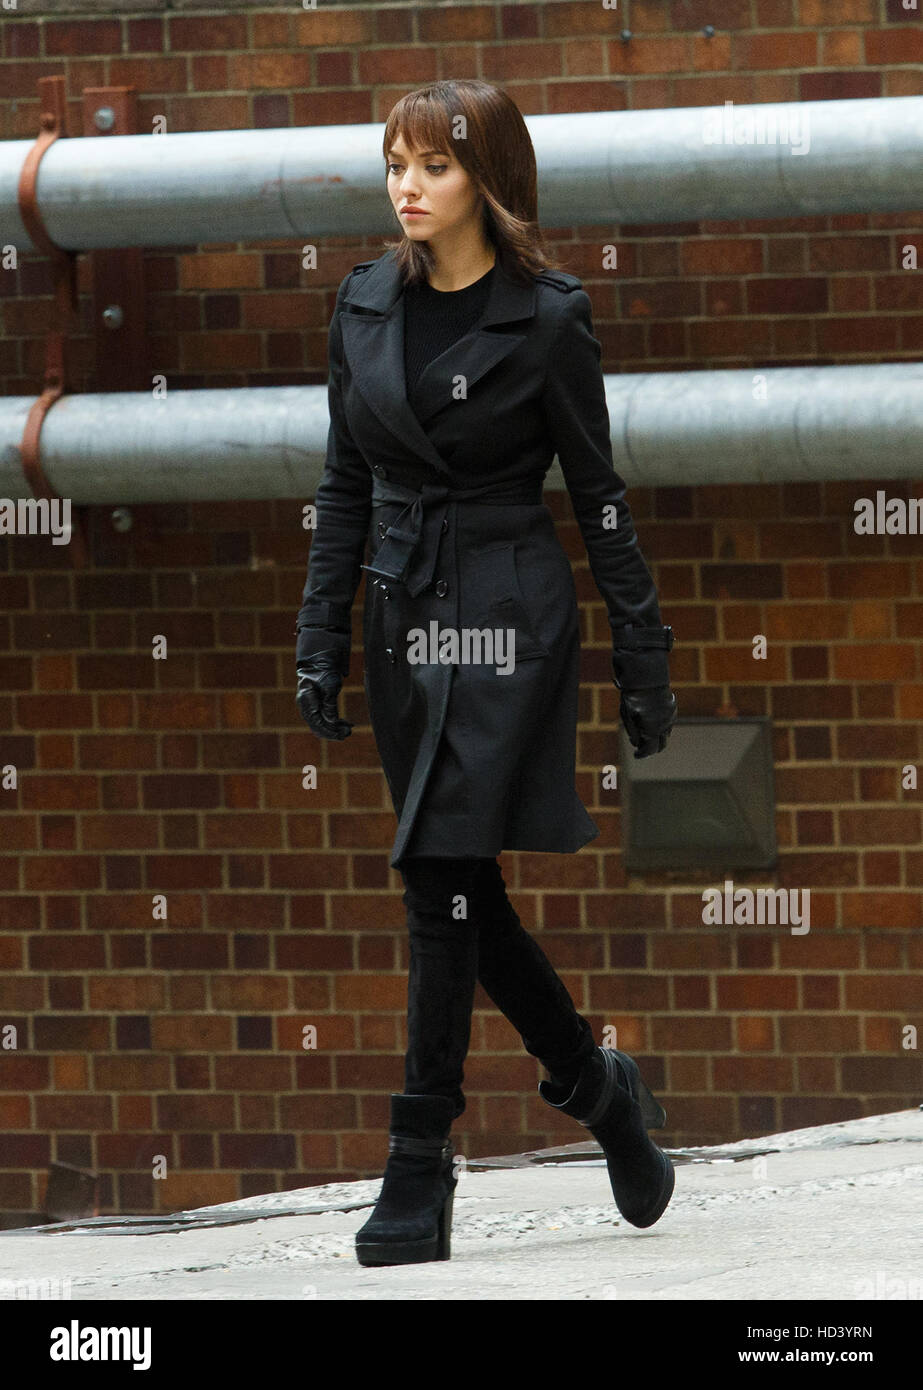 Filming of 'Anon' in New York, United States  Featuring: Amanda Seyfried Where: New York, United States - Stock Image